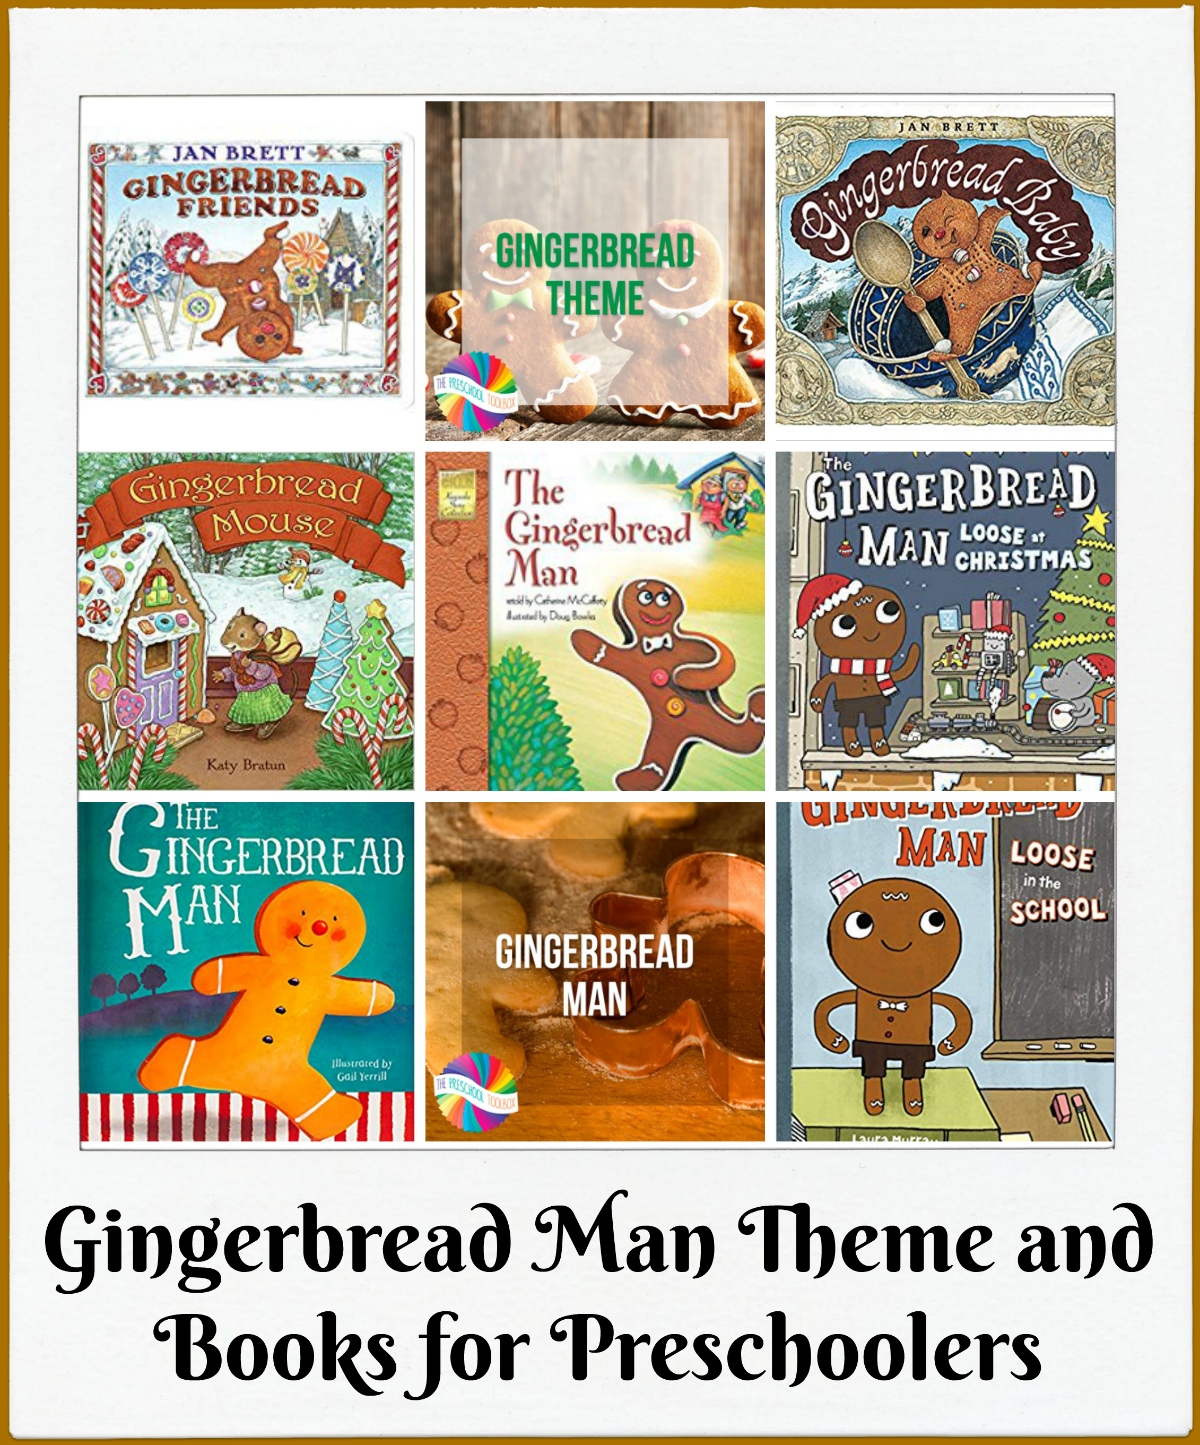 Gingerbread Man Books for Preschoolers